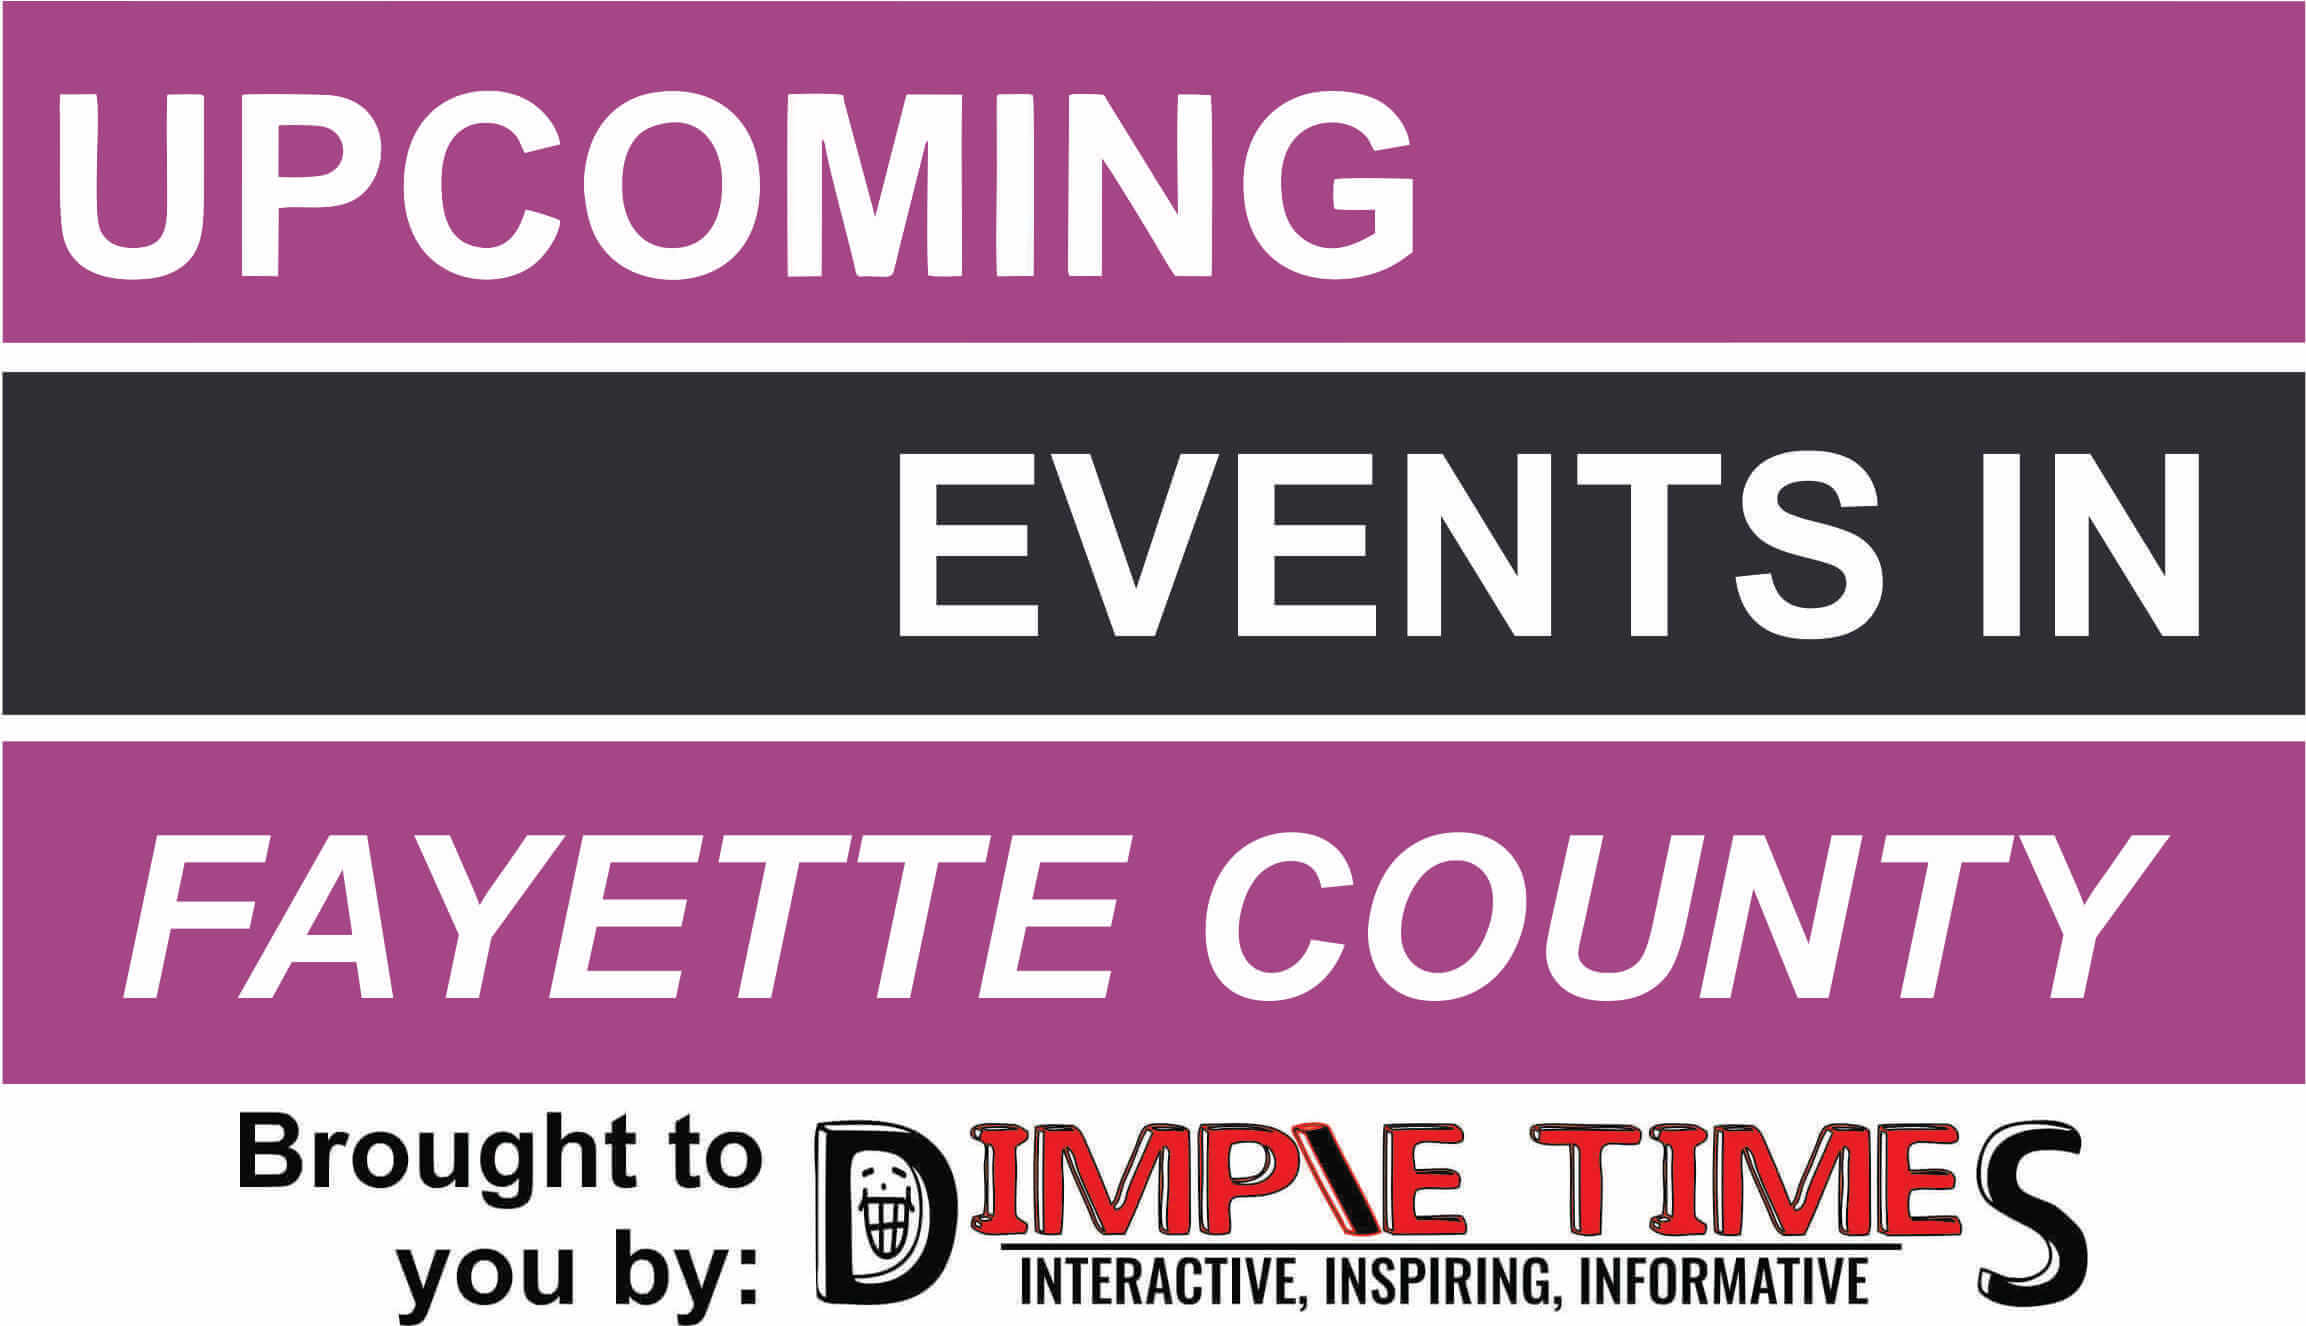 Upcoming events in Fayette County Ohio